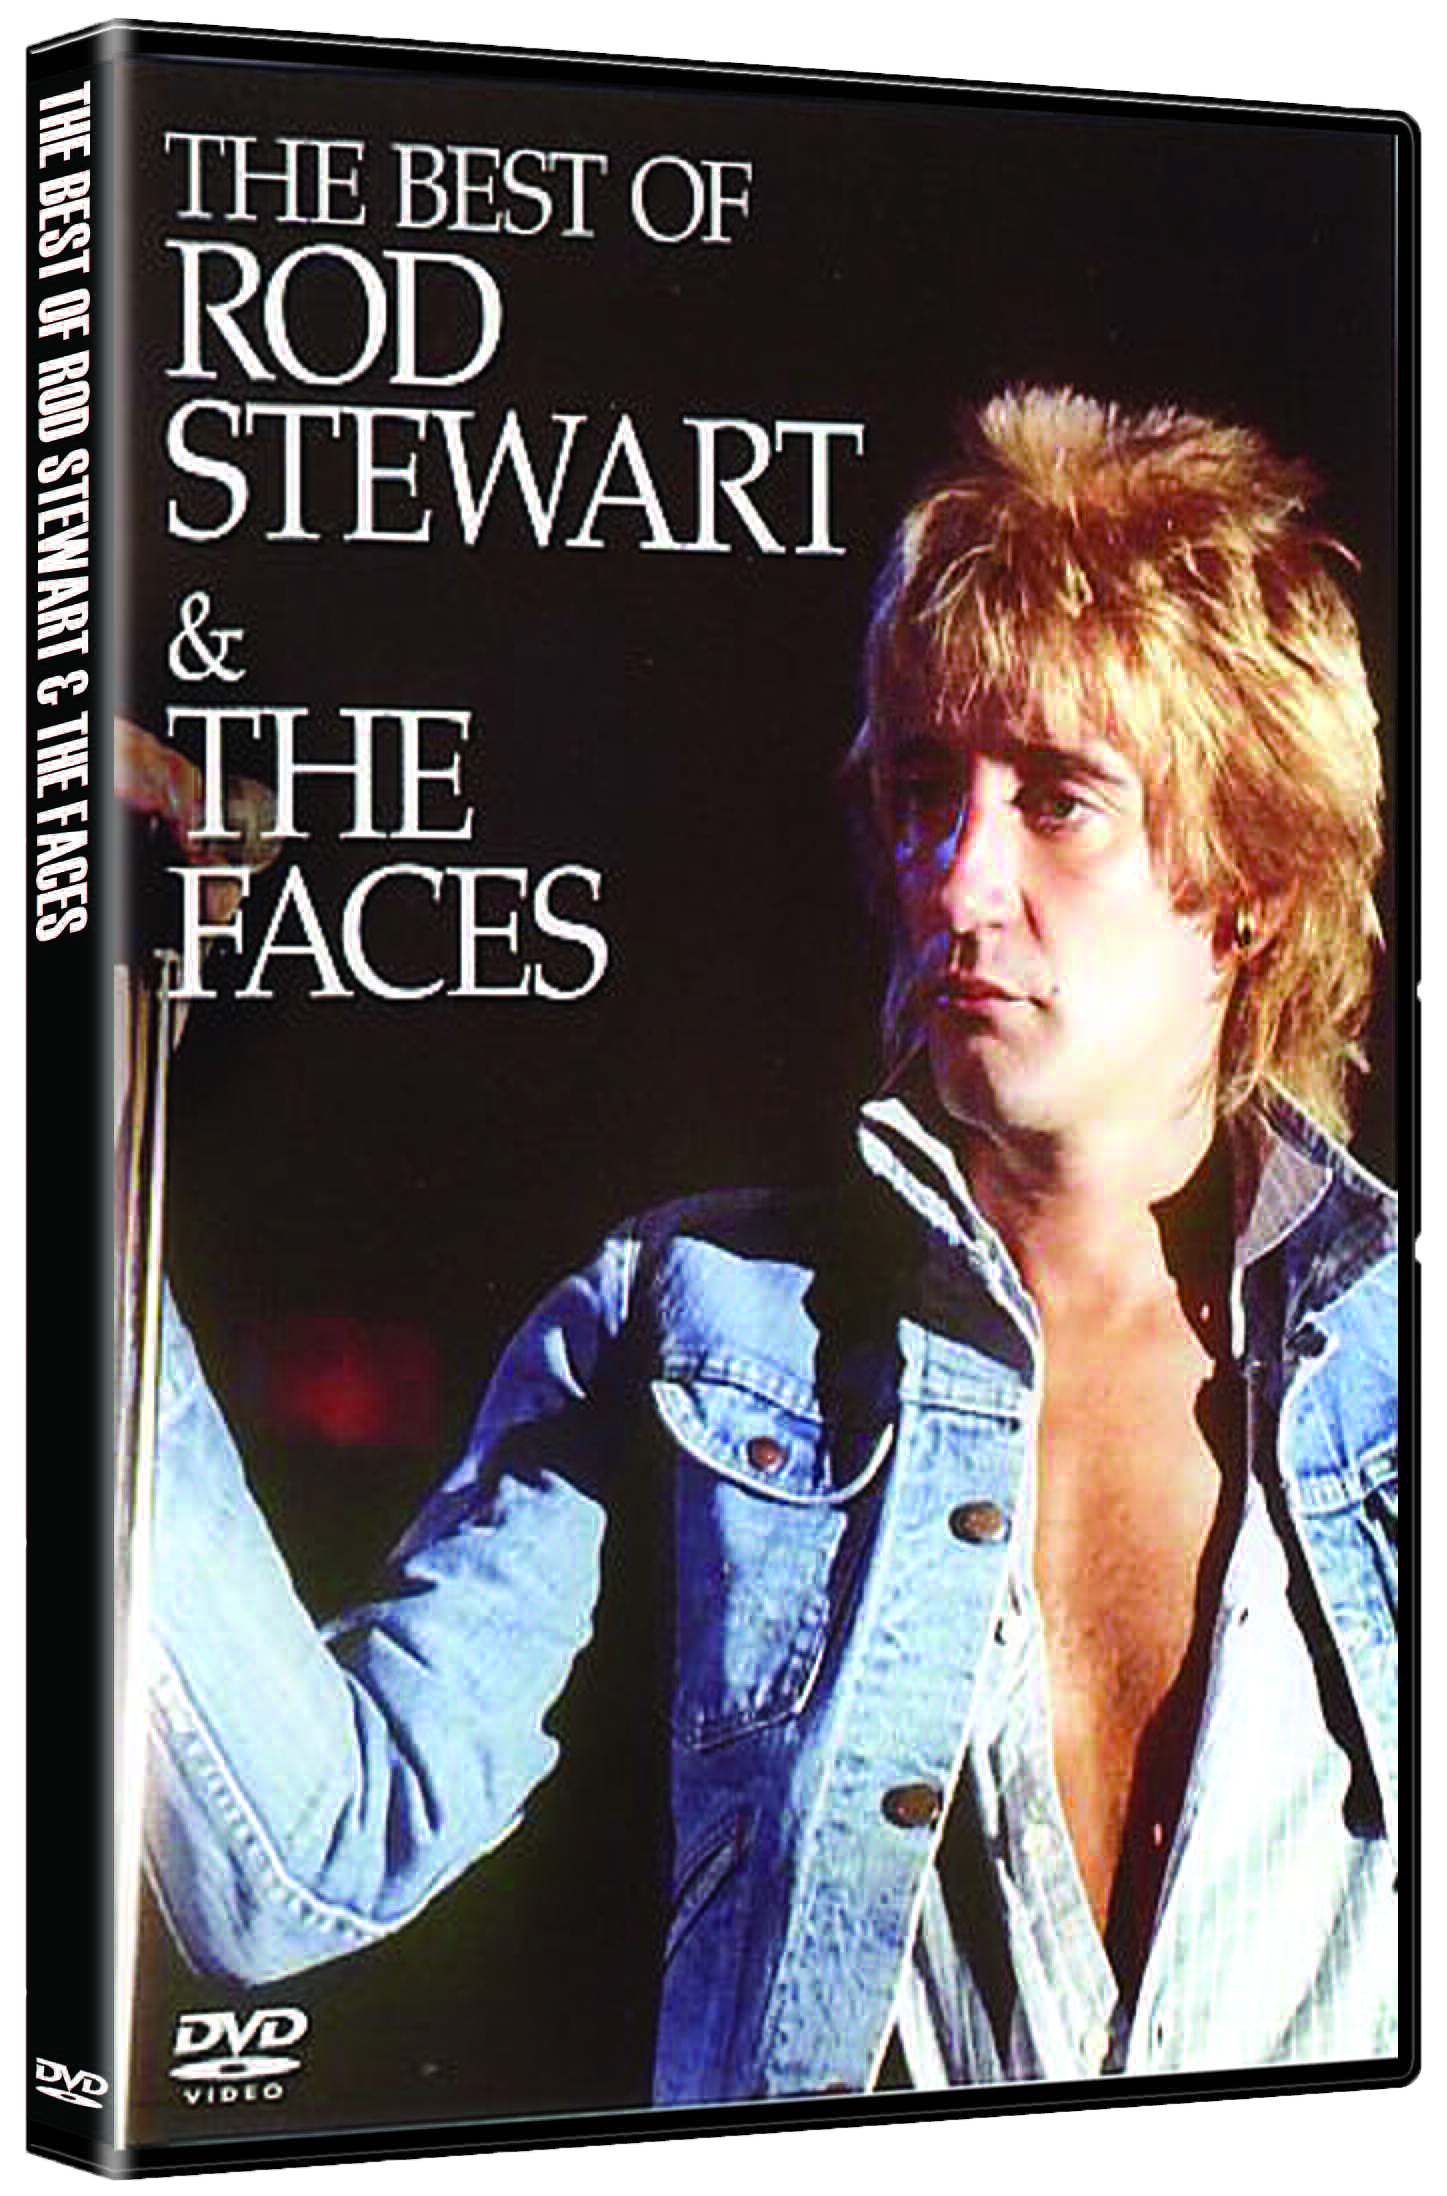 ROD STEWART & THE FACES, THE BEST OF